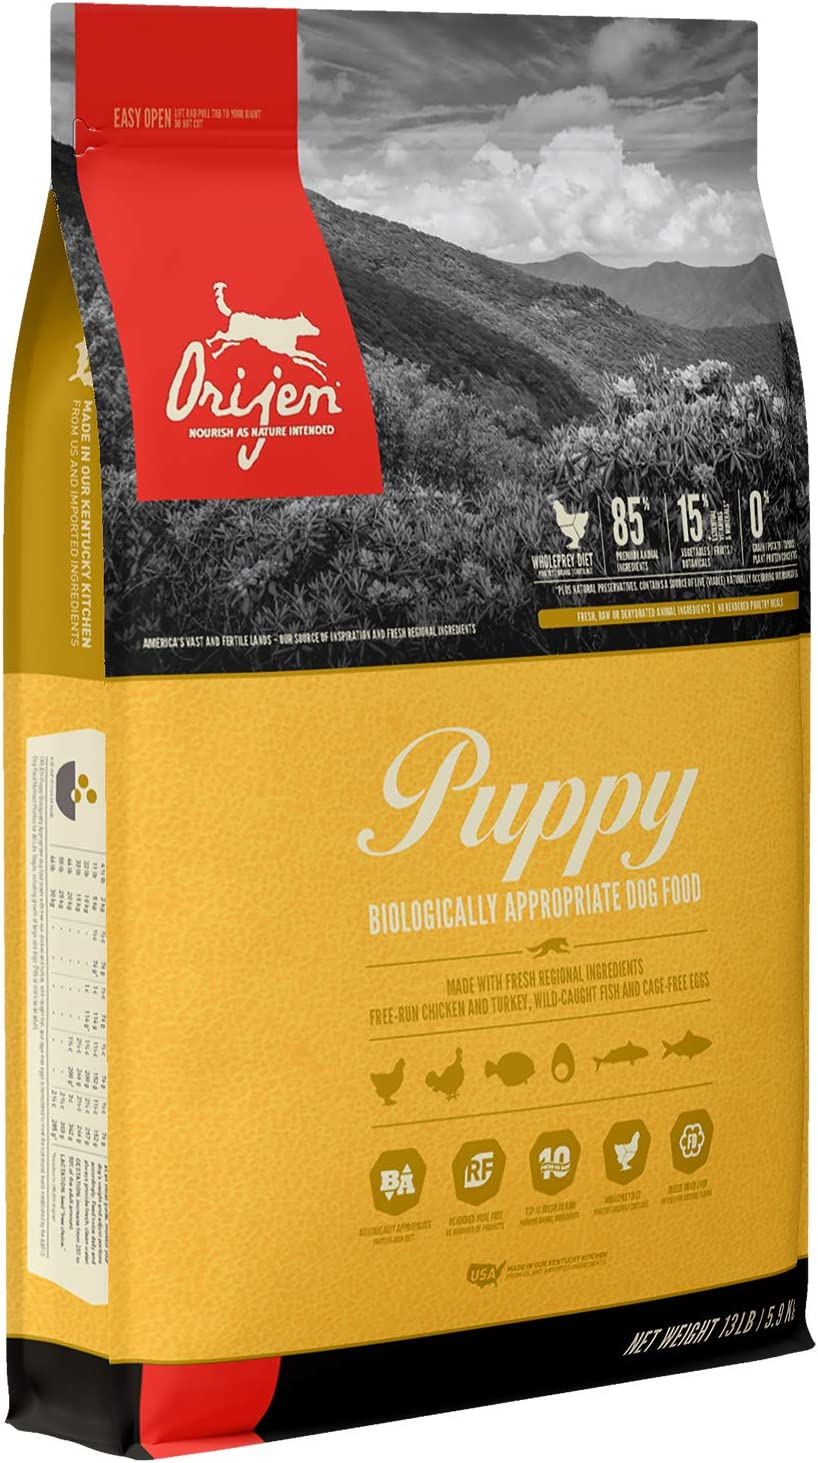 ORIJEN Puppy Dog Food, Grain Free, High Protein, Fresh & Raw Animal Ingredients, 13lb